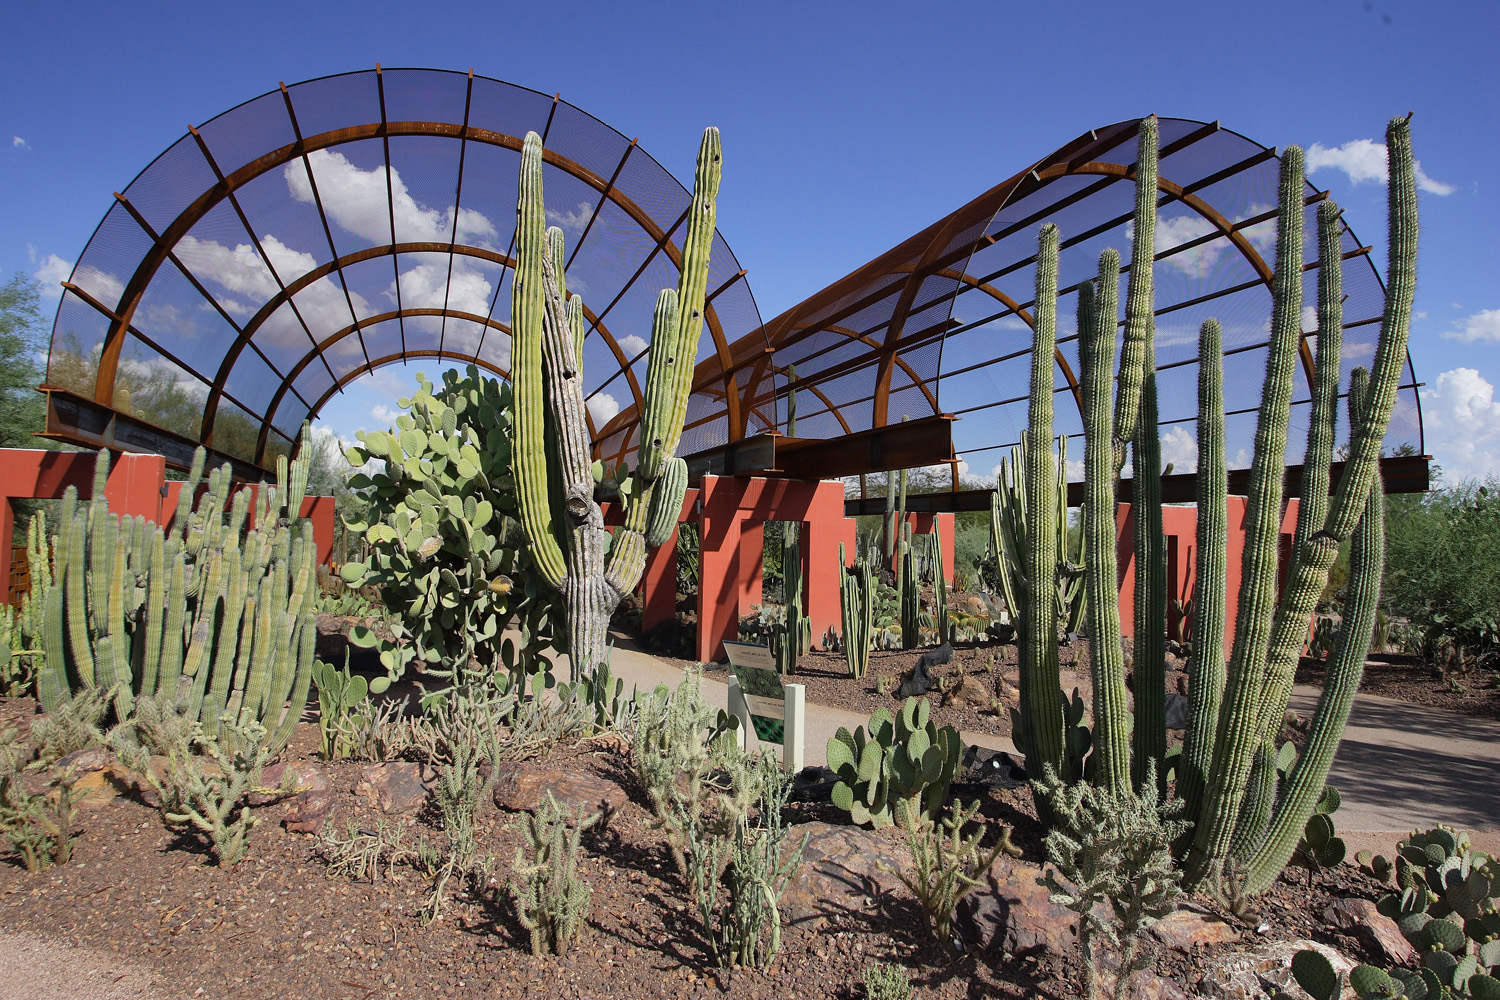 Cacti Stand Tall At The Desert Botanical Garden In Phoenix. Courtesy Of  Desert Botanical Garden